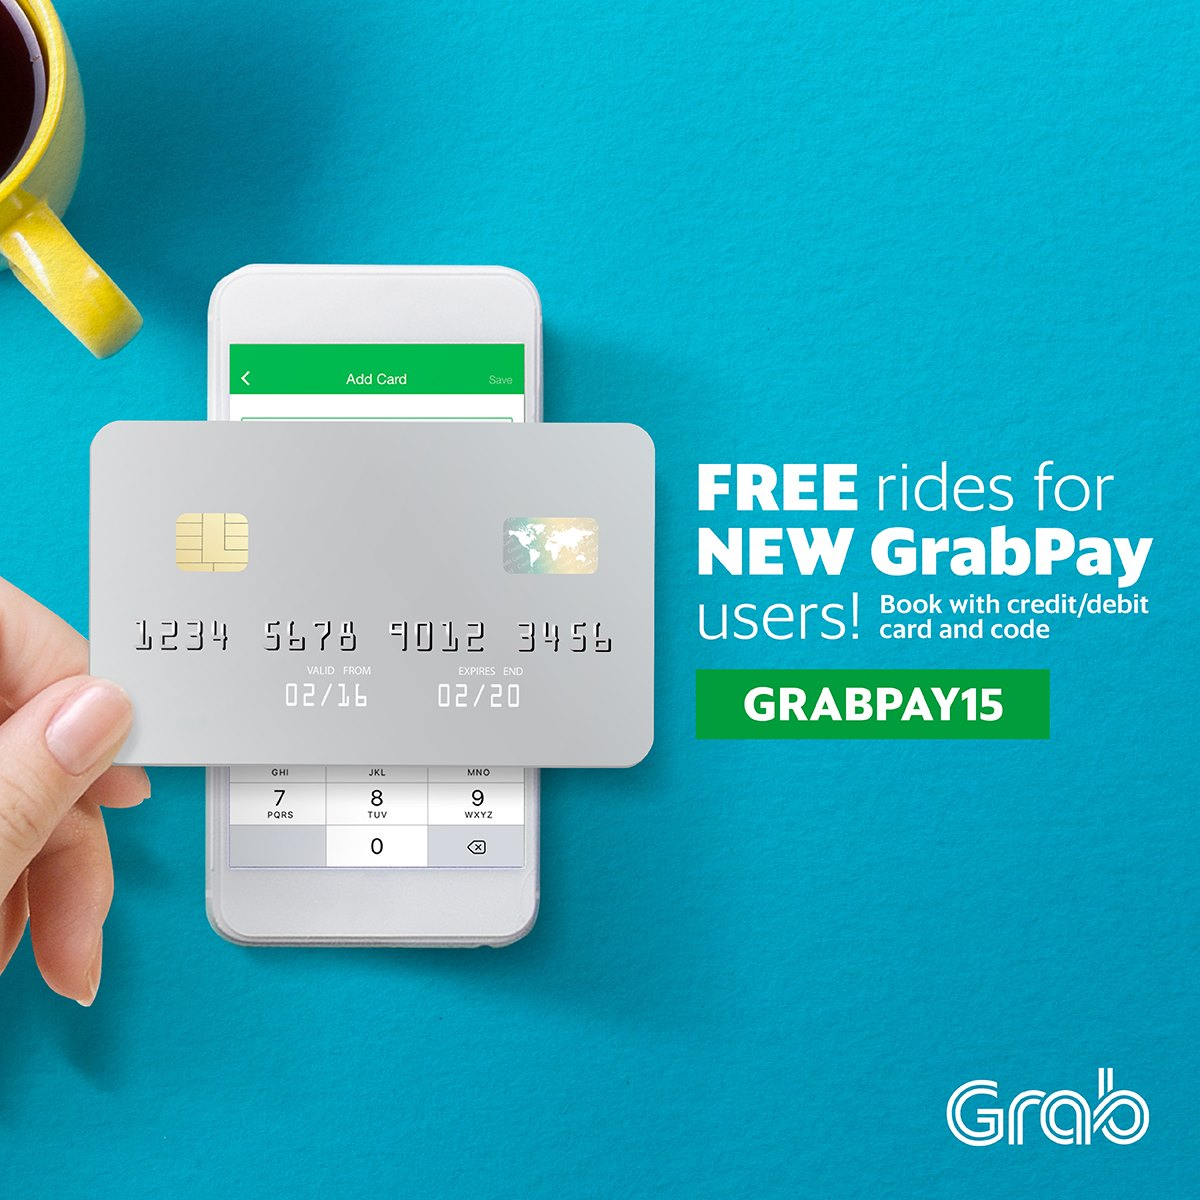 Grab Promo Code RM15 OFF 5 Rides for New GrabPay (Debit